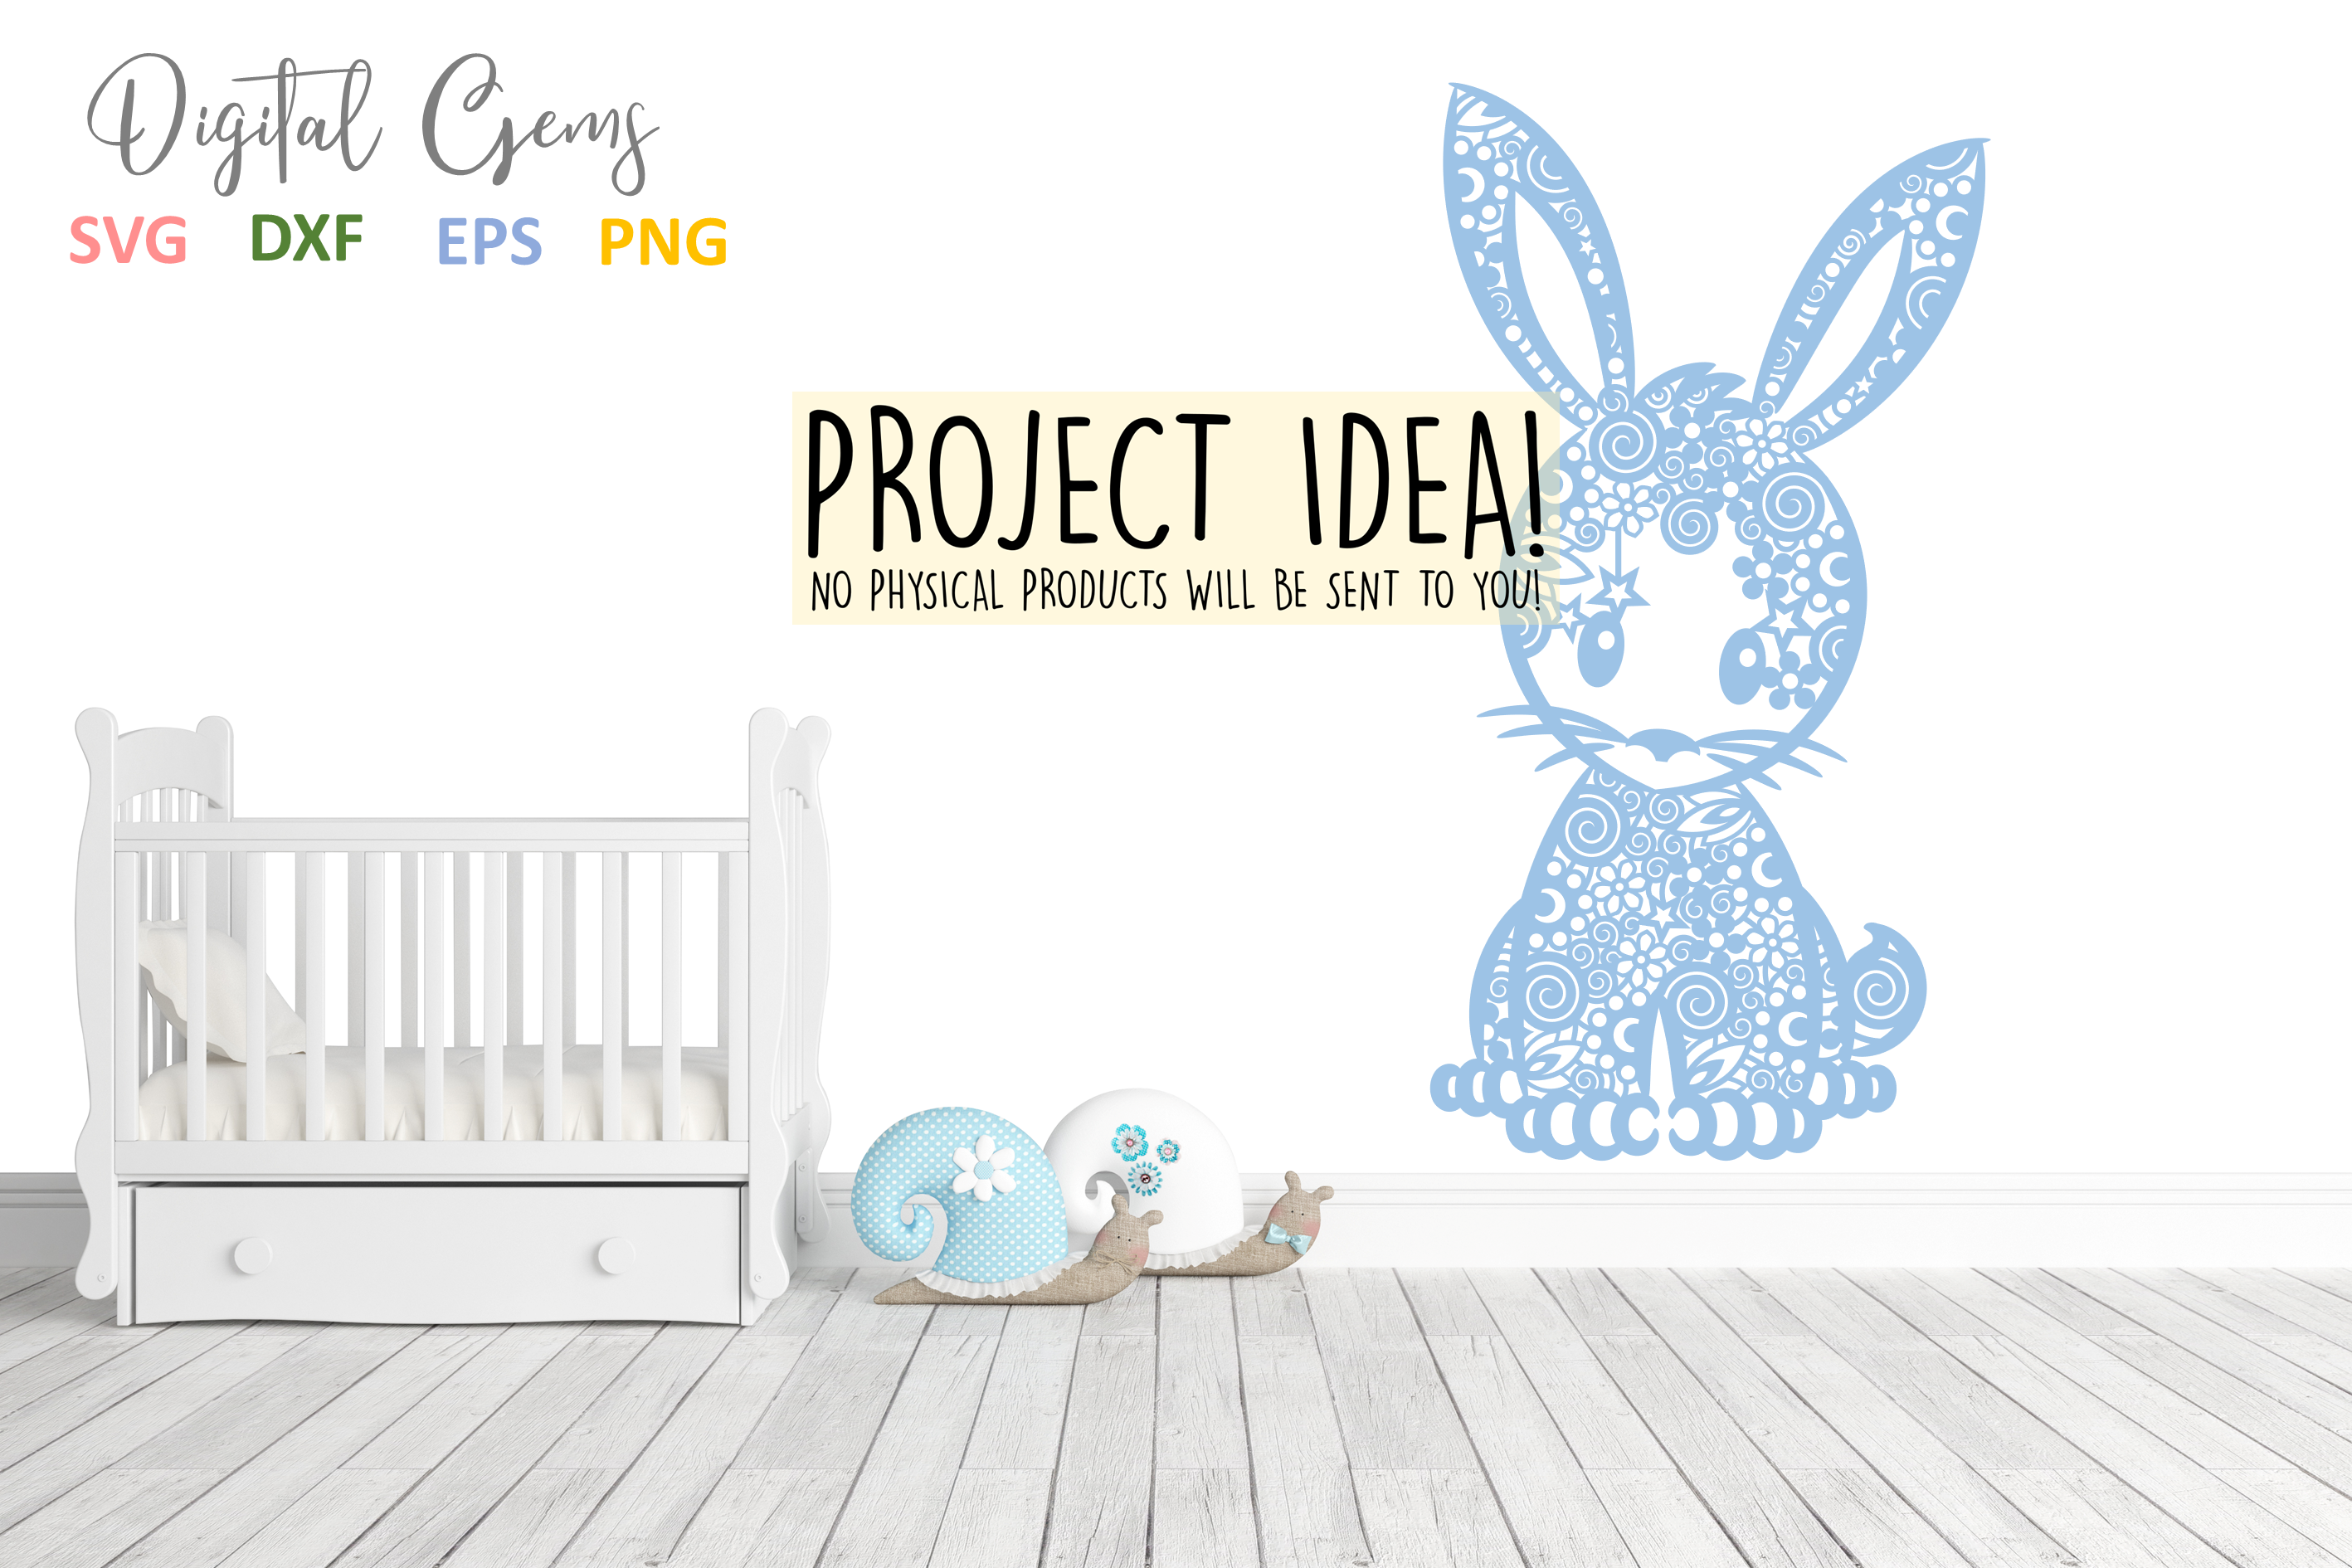 Bunny Rabbit paper cut SVG / DXF / EPS / PNG files example image 5